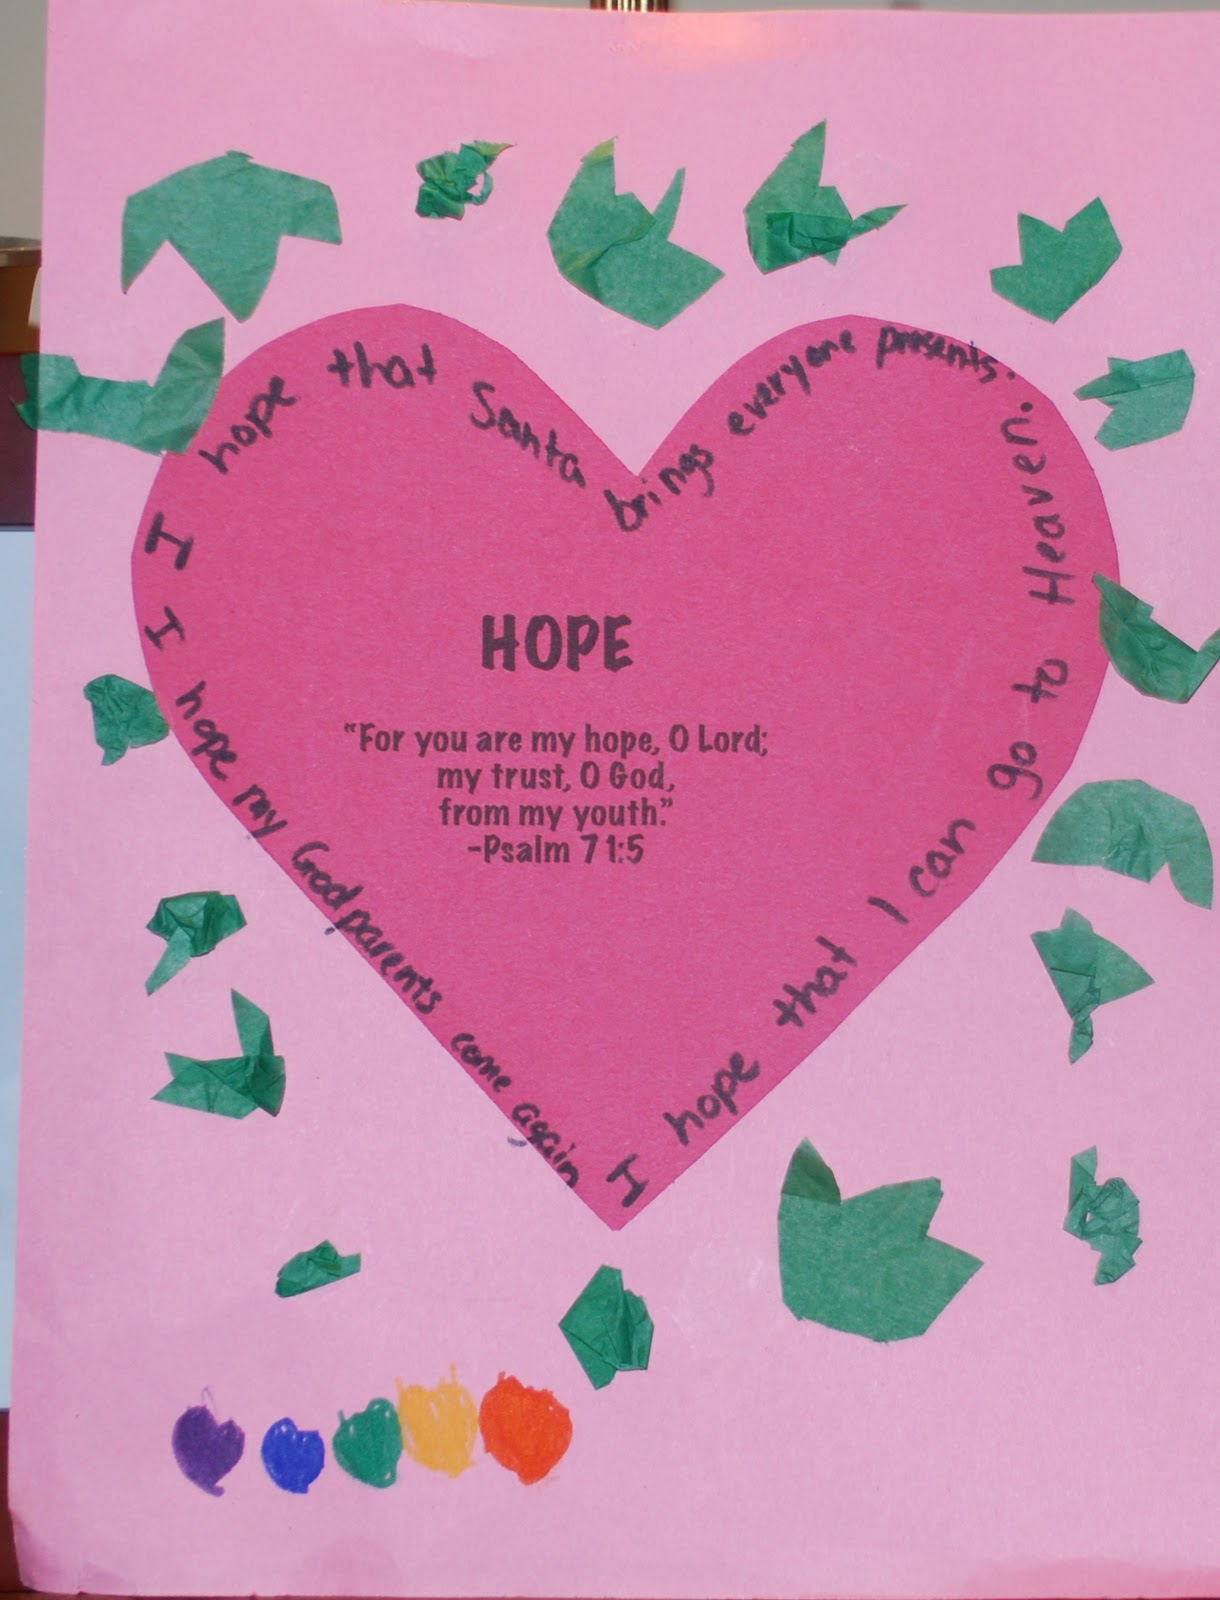 The Little Way: Our Little Flowers Girls Club Group